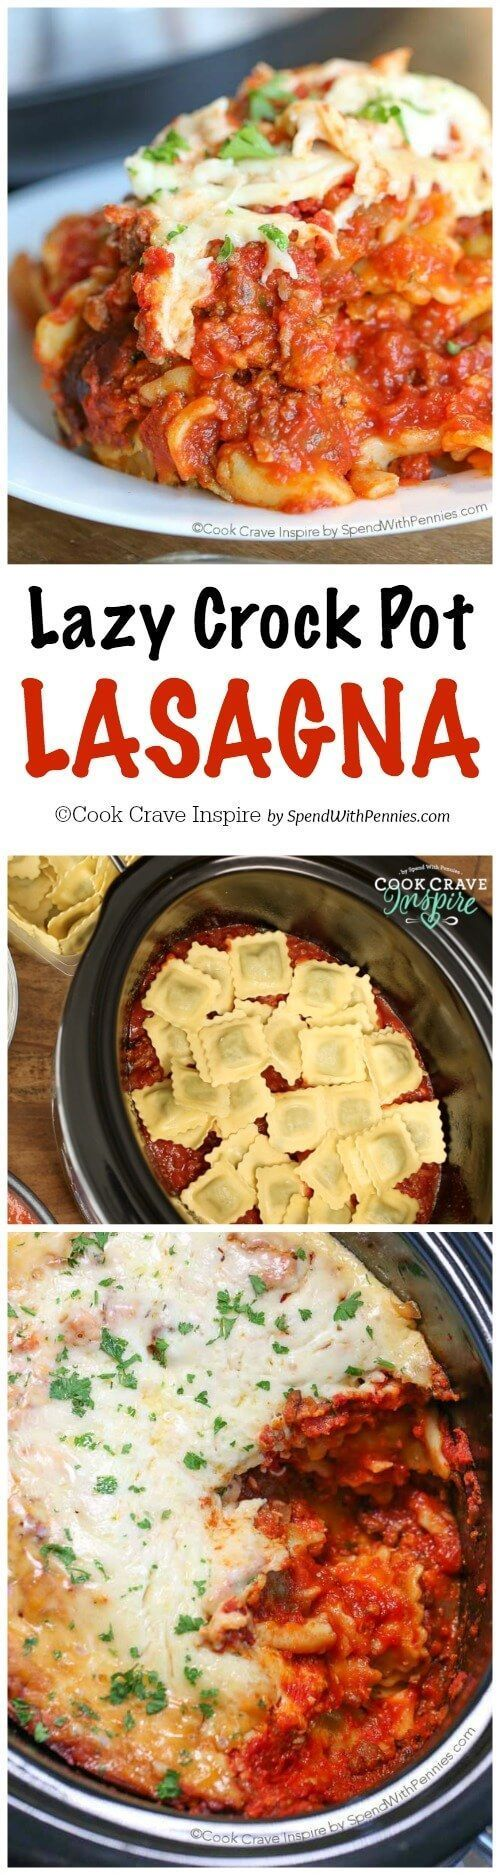 Lazy Crock Pot Lasagna is a family favorite and so quick and easy to make! A delicious meat sauce is layered with cheese and spinach filled ravioli and loads of gooey cheese and cooks up perfectly in the slow cooker. This is one meal that everyone will agree on.